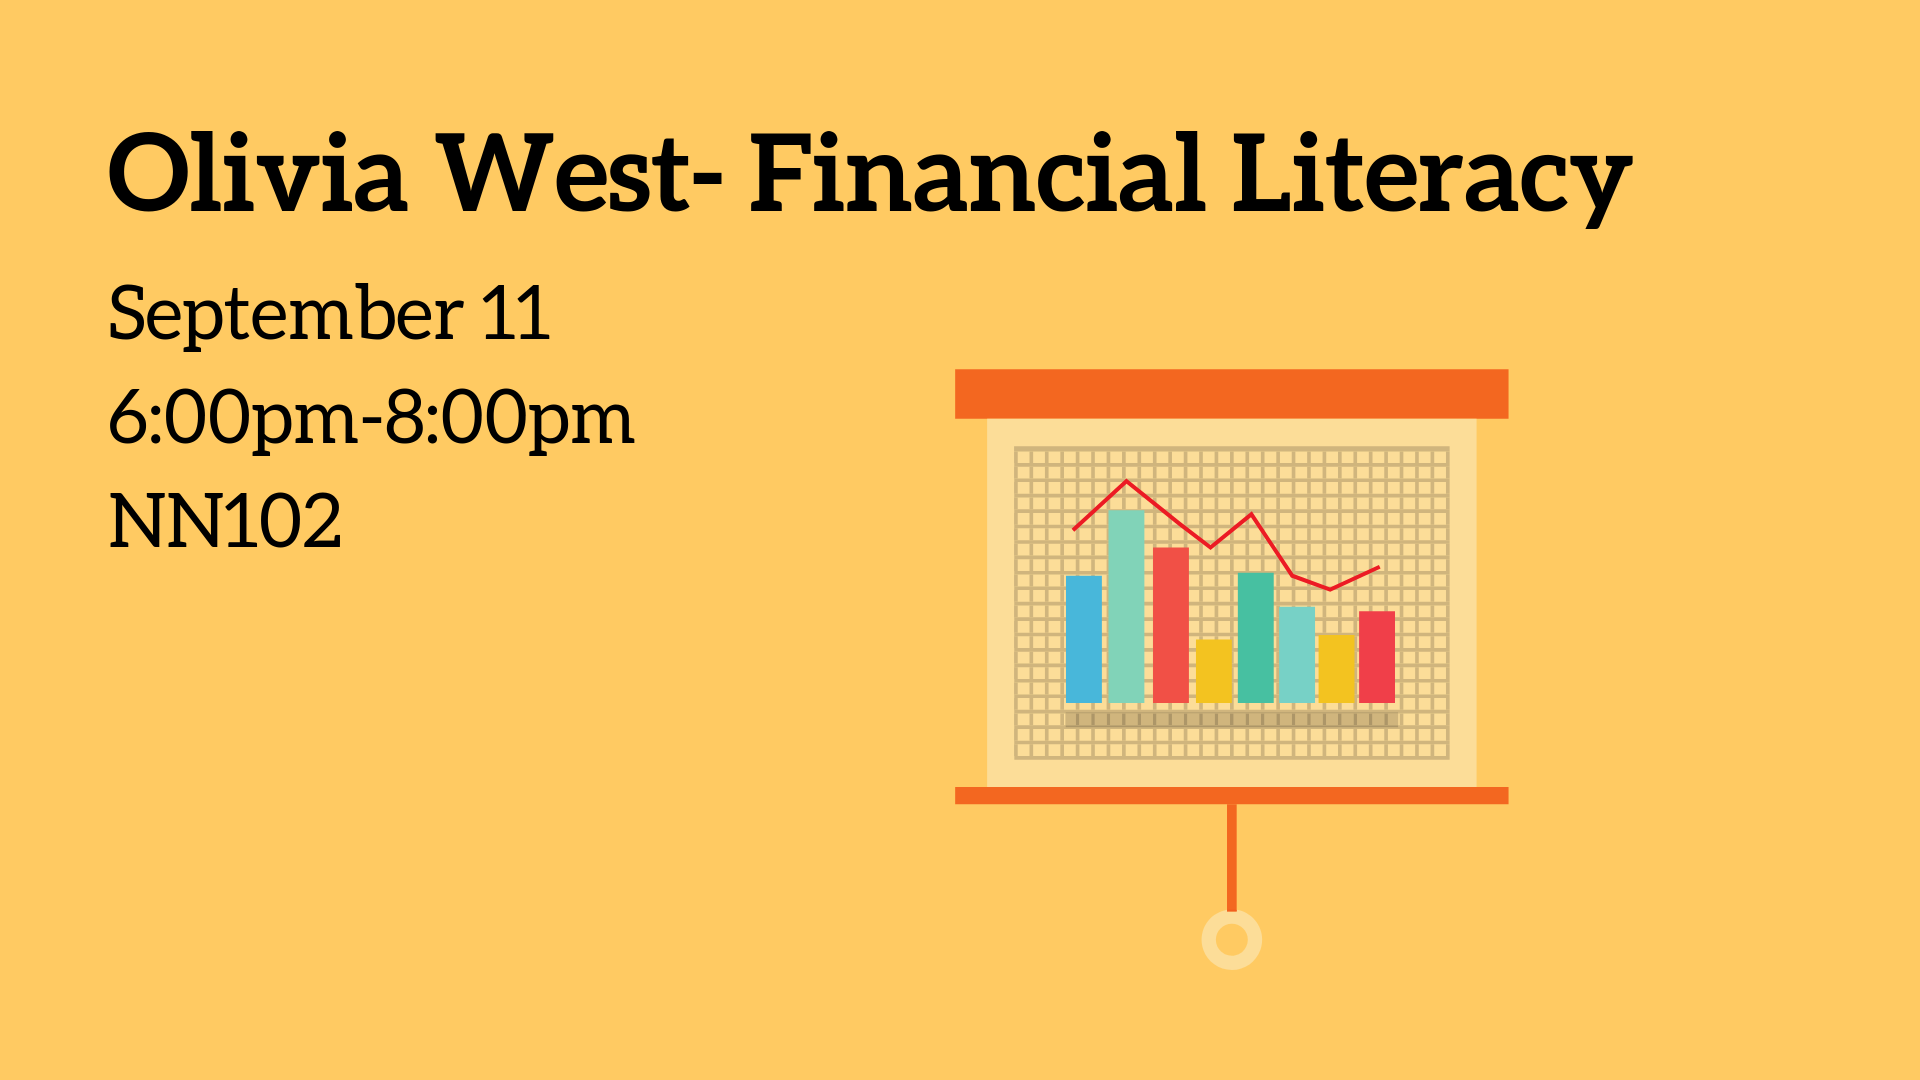 Olivia West- Financial Literacy: September 11, 6:00pm-8:00pm, NN102